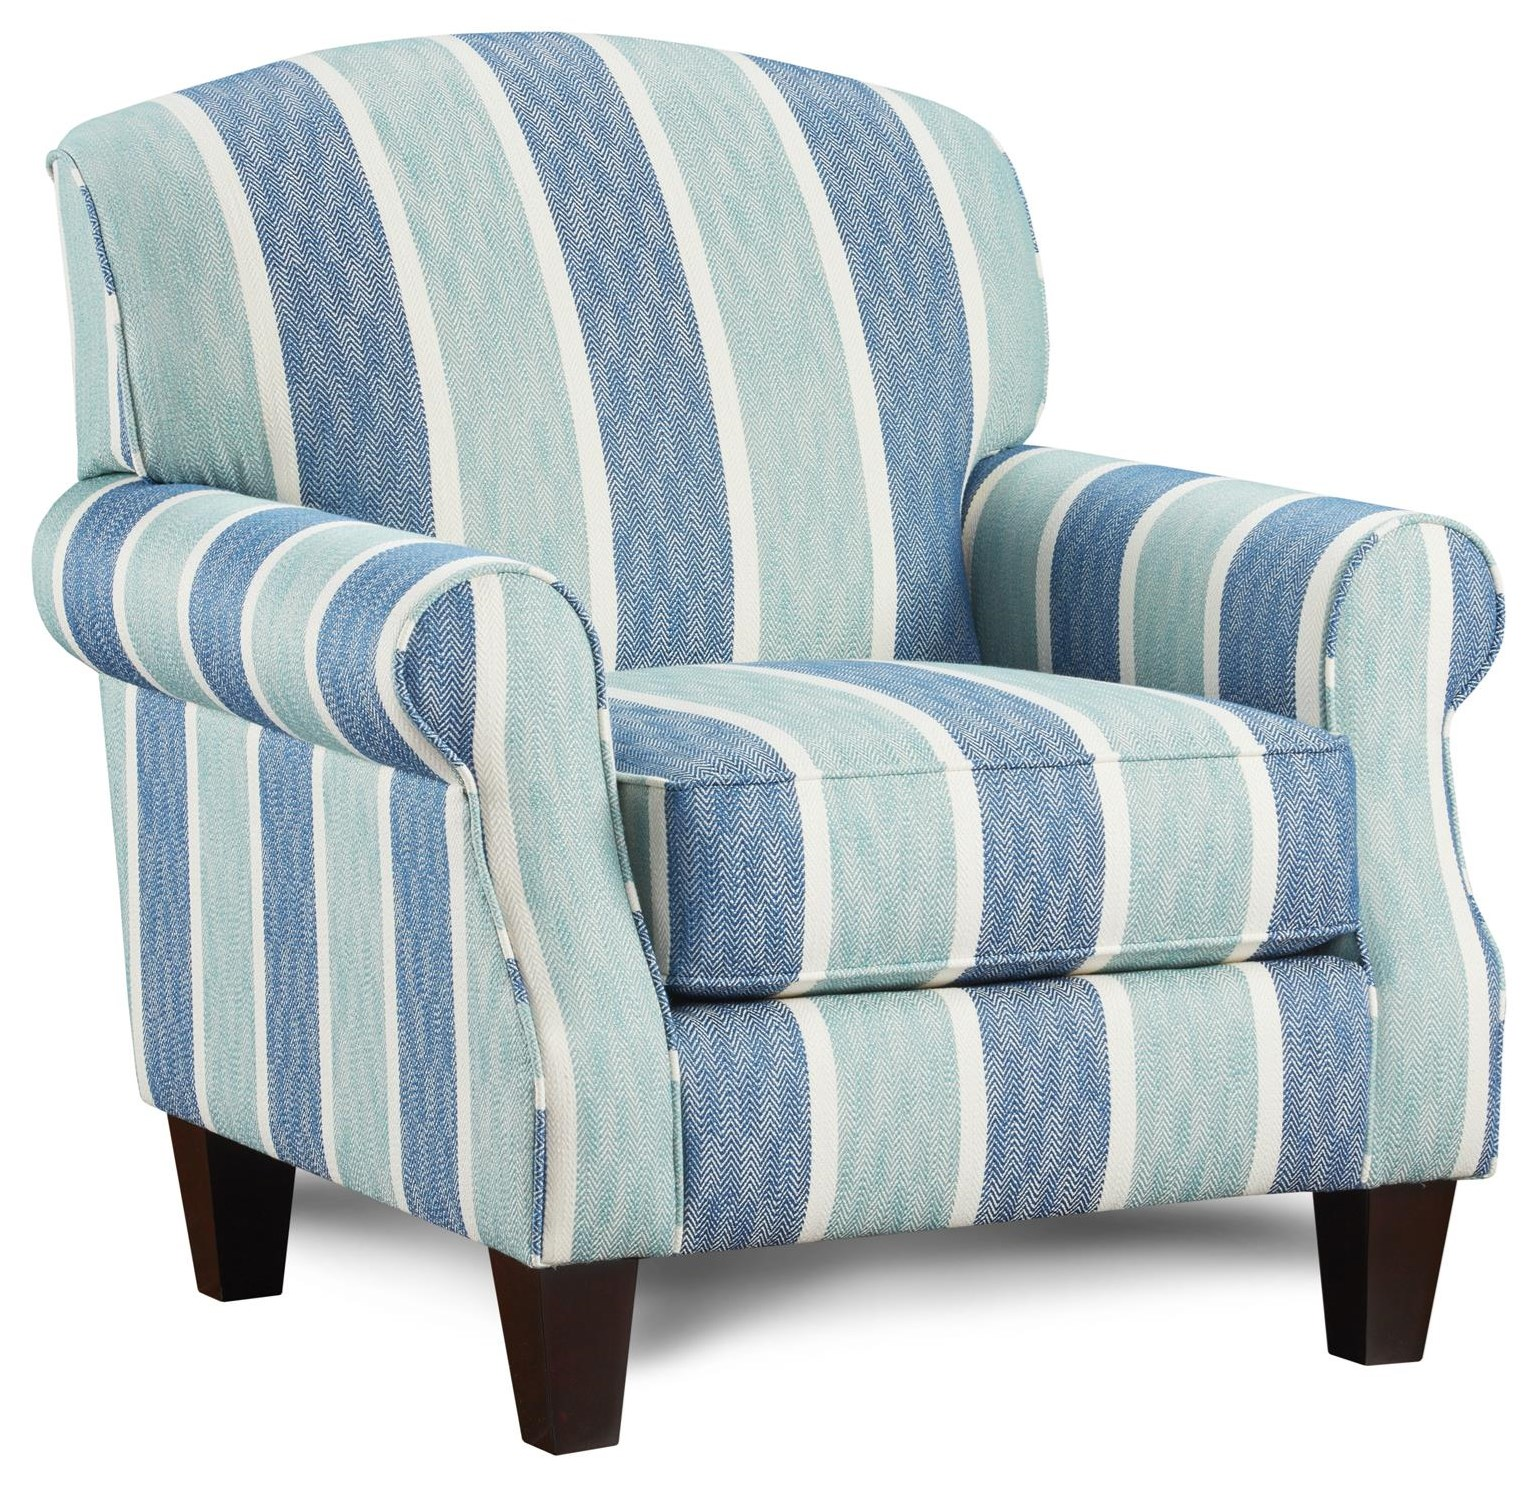 532 Accent Chair by Kent Home Furnishings at Johnny Janosik